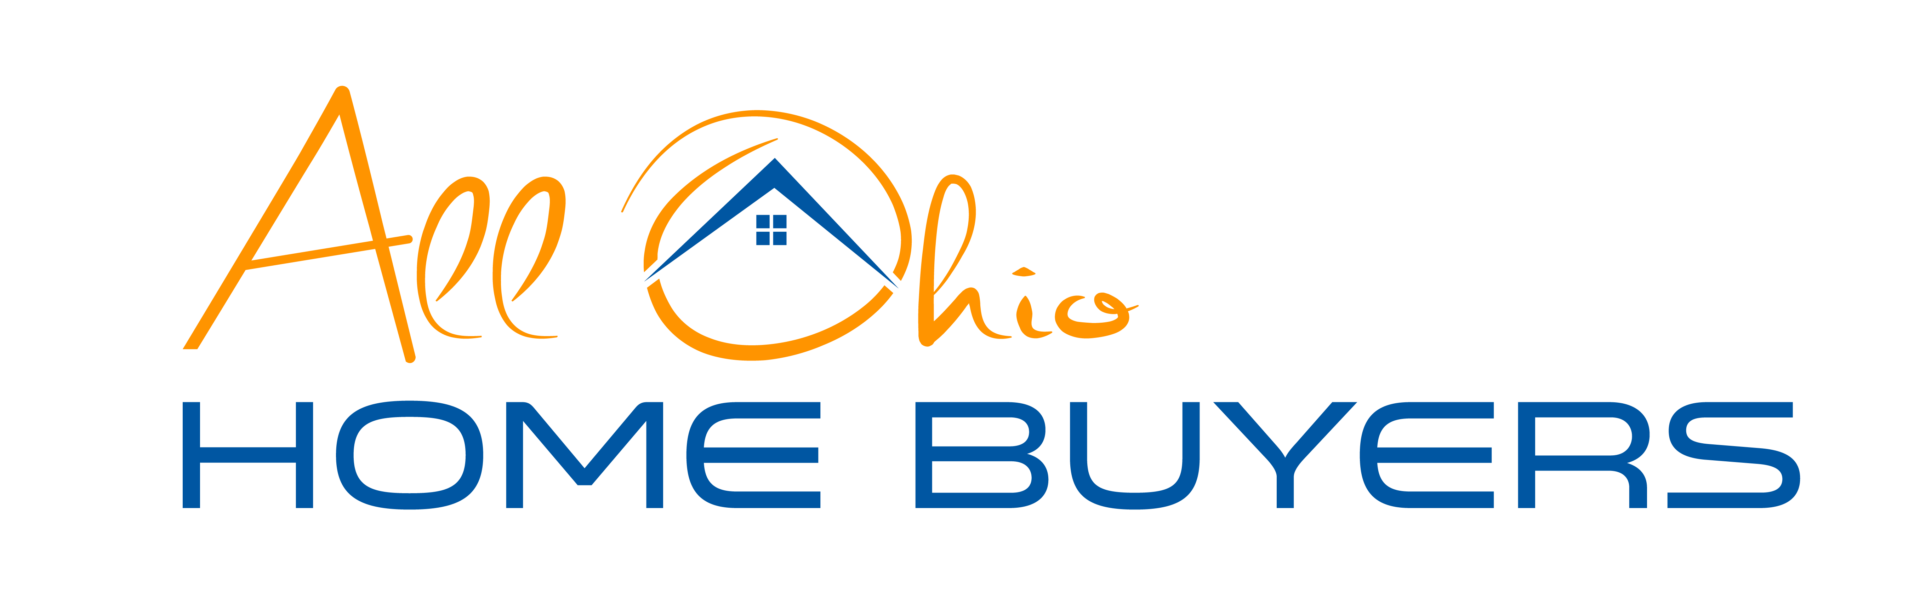 All Ohio Homebuyers logo